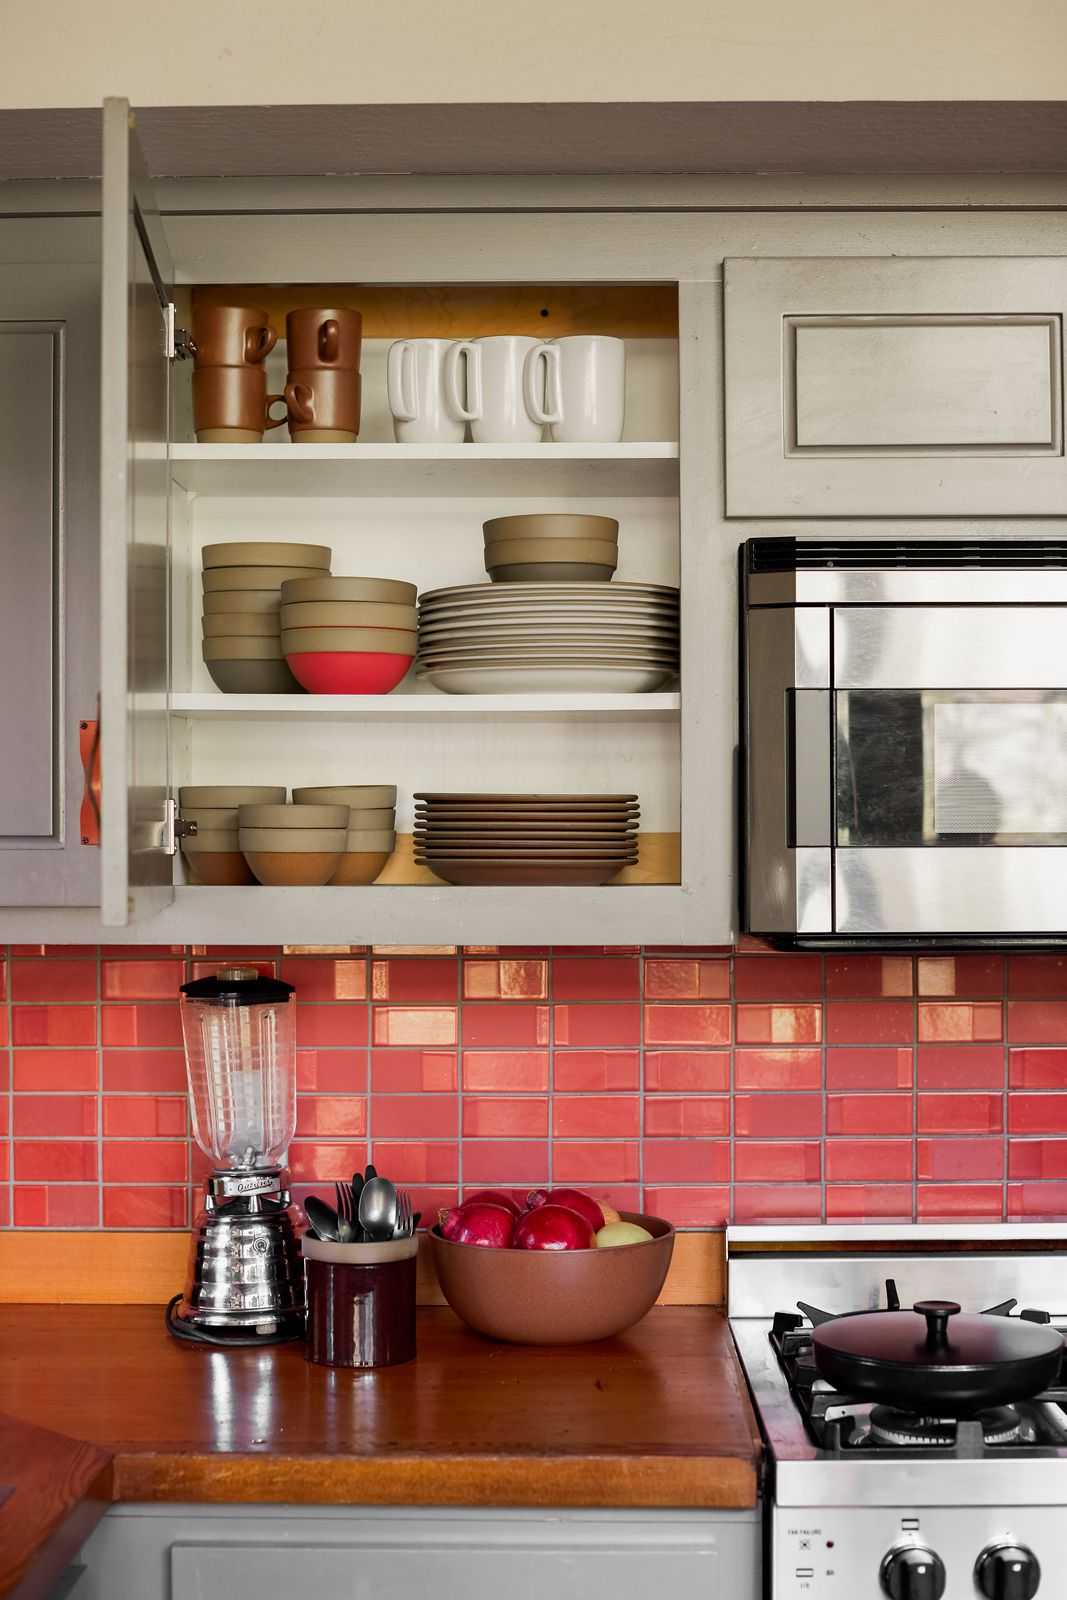 A kitchen counter with red tile.